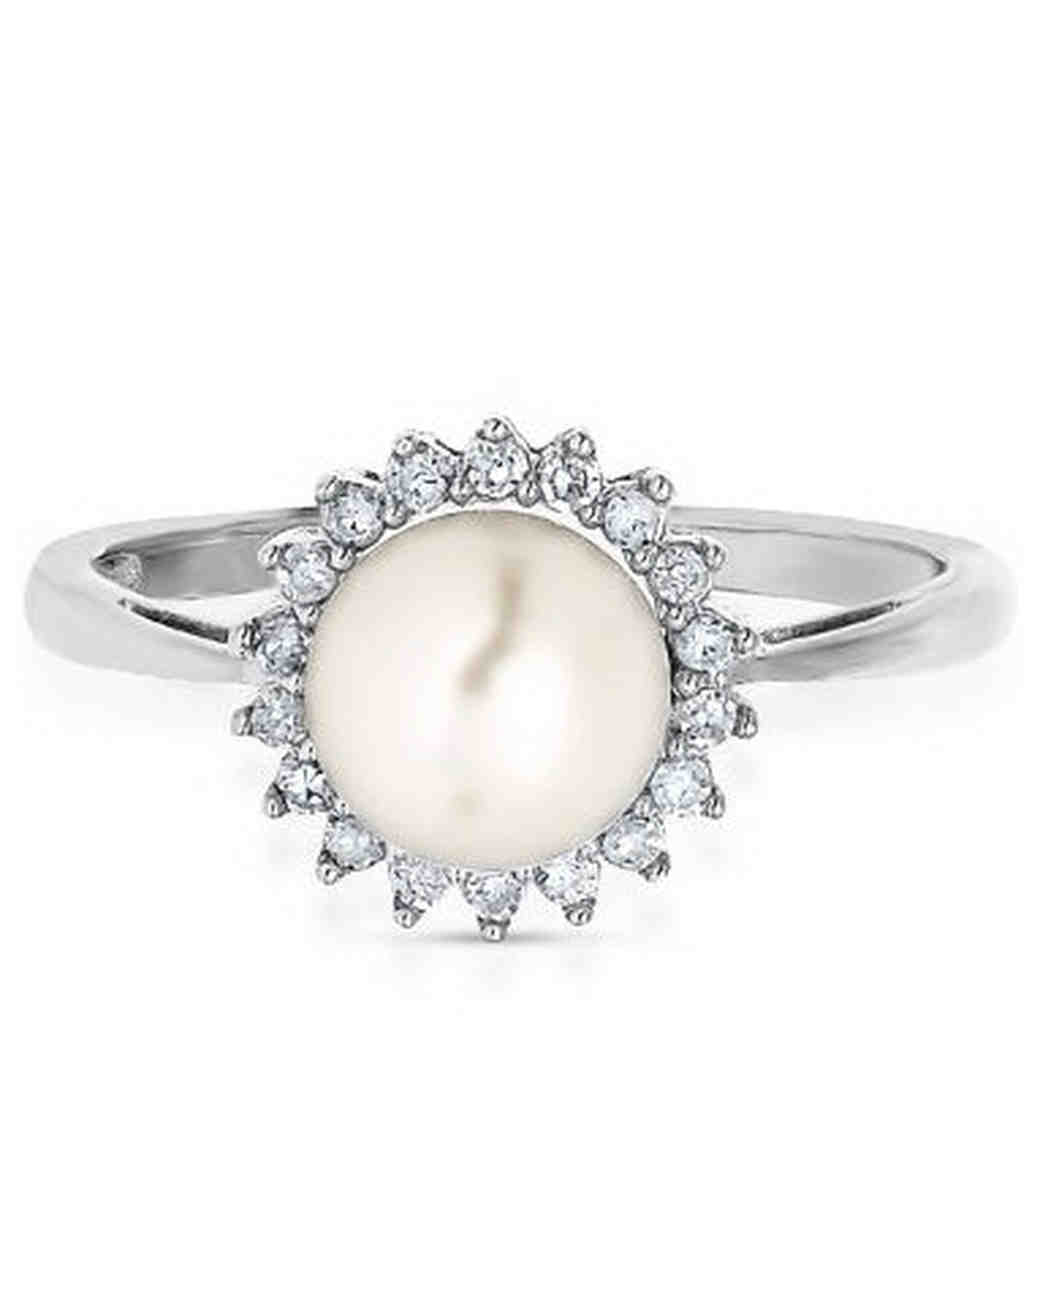 real l product ring engagement white gold diamond rings company tahitian trading jewellery pearl dress